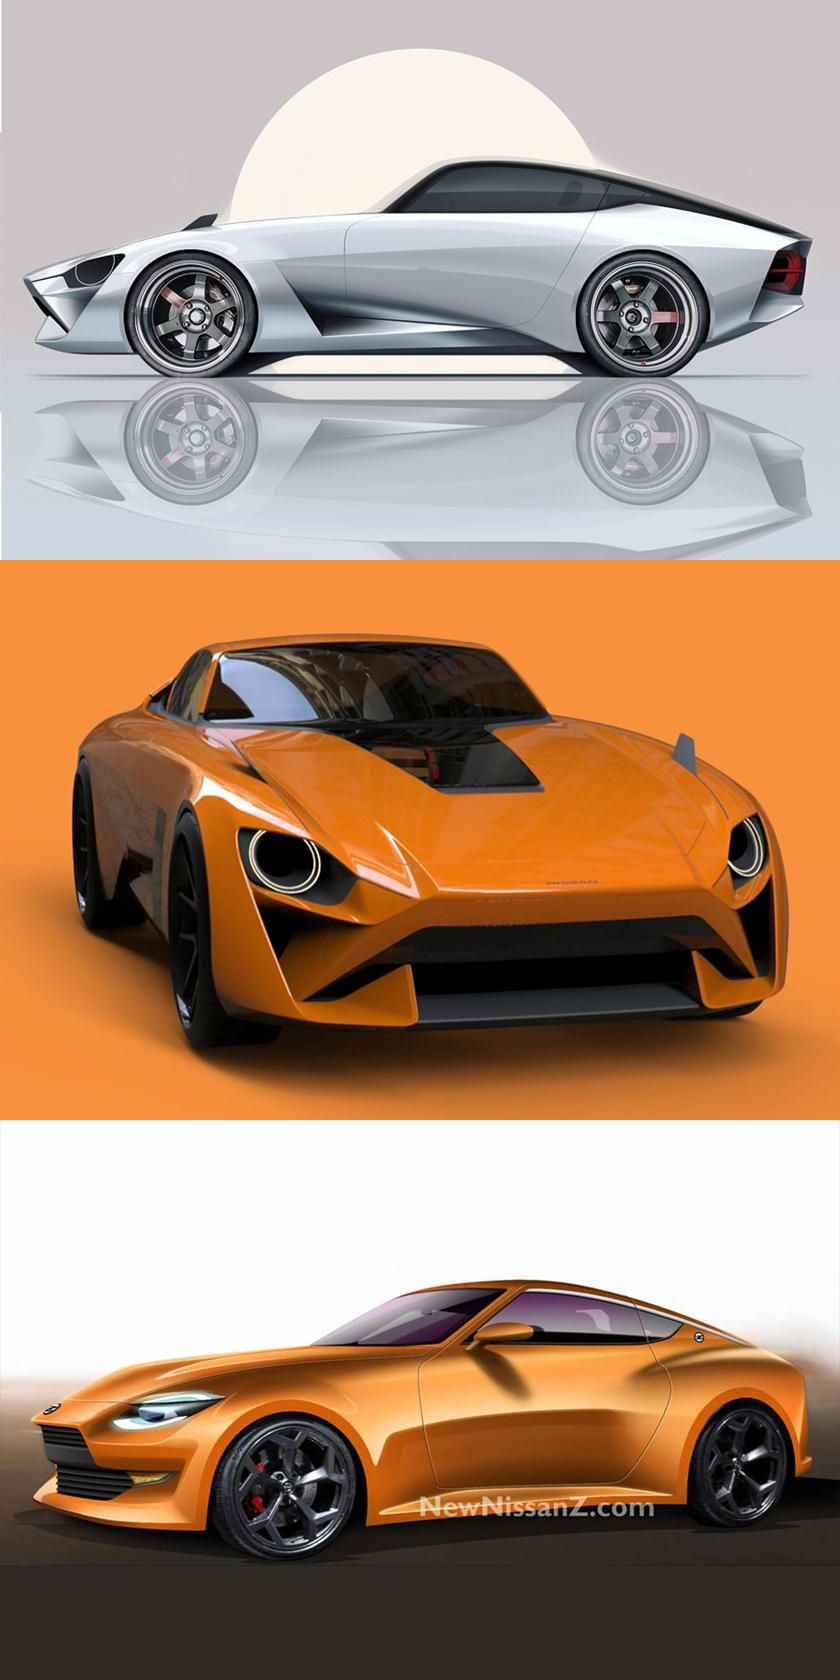 Everything You Need To Know About The Nissan 400z A New Generation Of Nissan S Z Car Is Coming In 2020 Nissan Nissan Z Cars New Toyota Supra